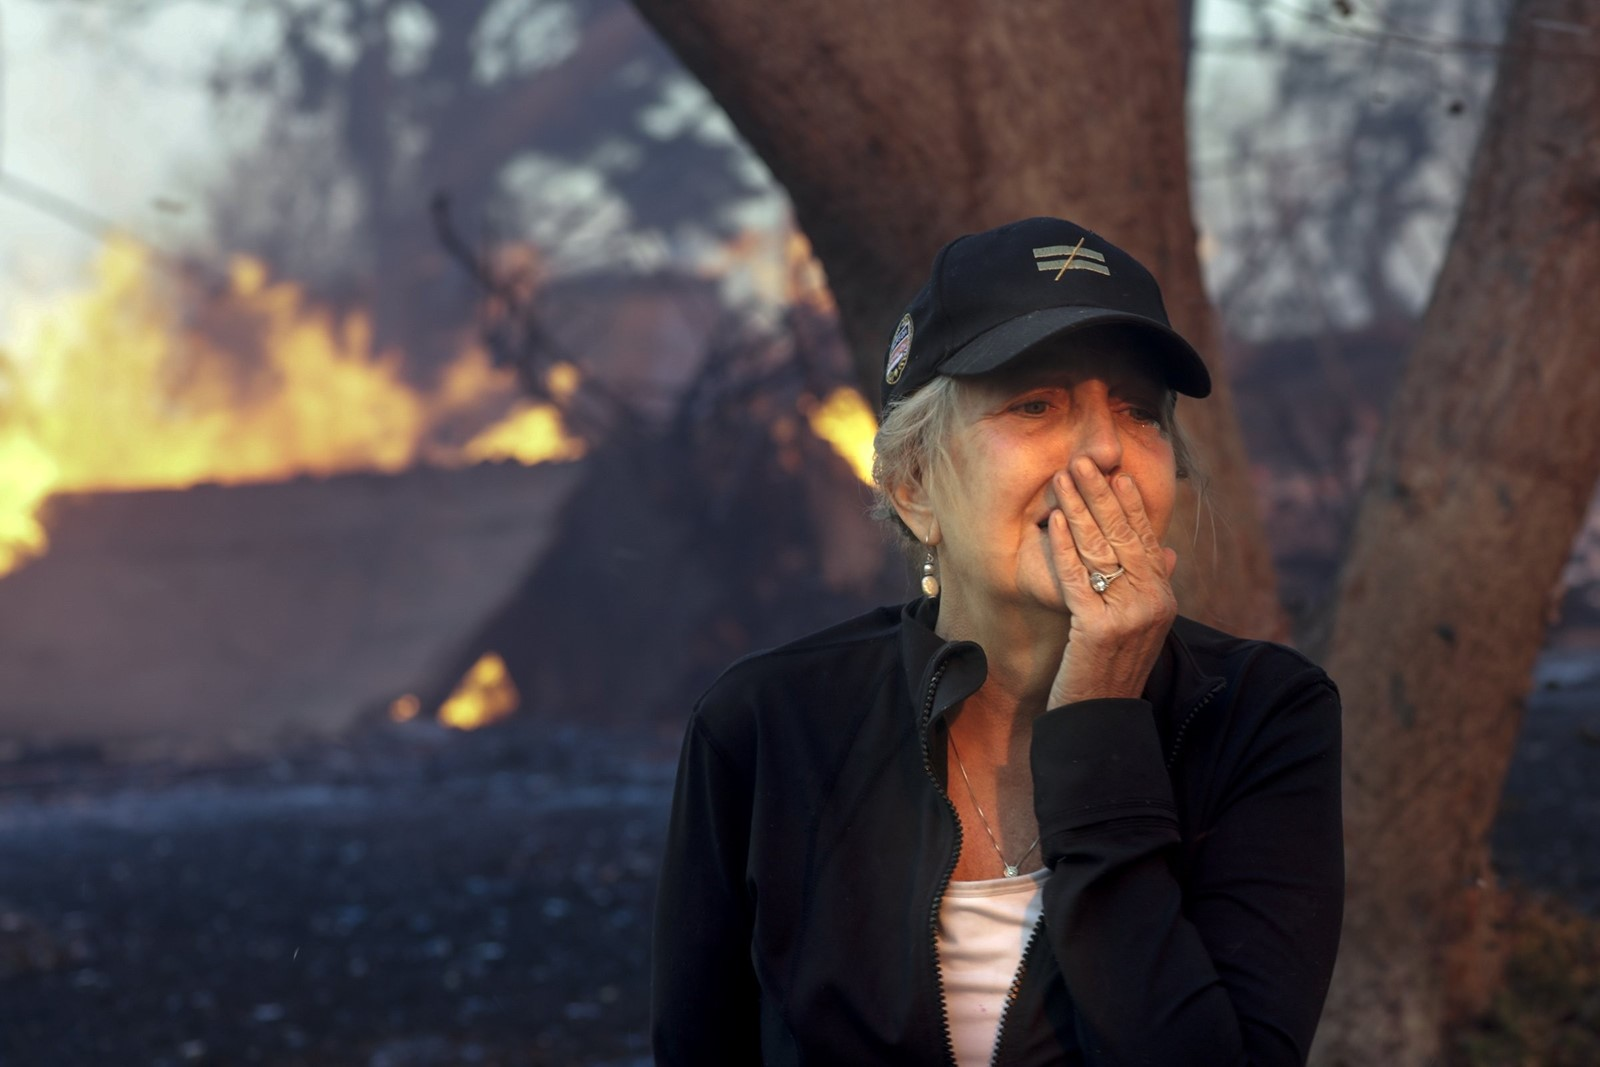 Judy Hofmann-Sanders watches as the Creek fire consumes her home on McBroom Street in L.A.'s Shadow Hills neighborhood on Tuesday. — Photograph: Irfan Khan/Los Angeles Times.